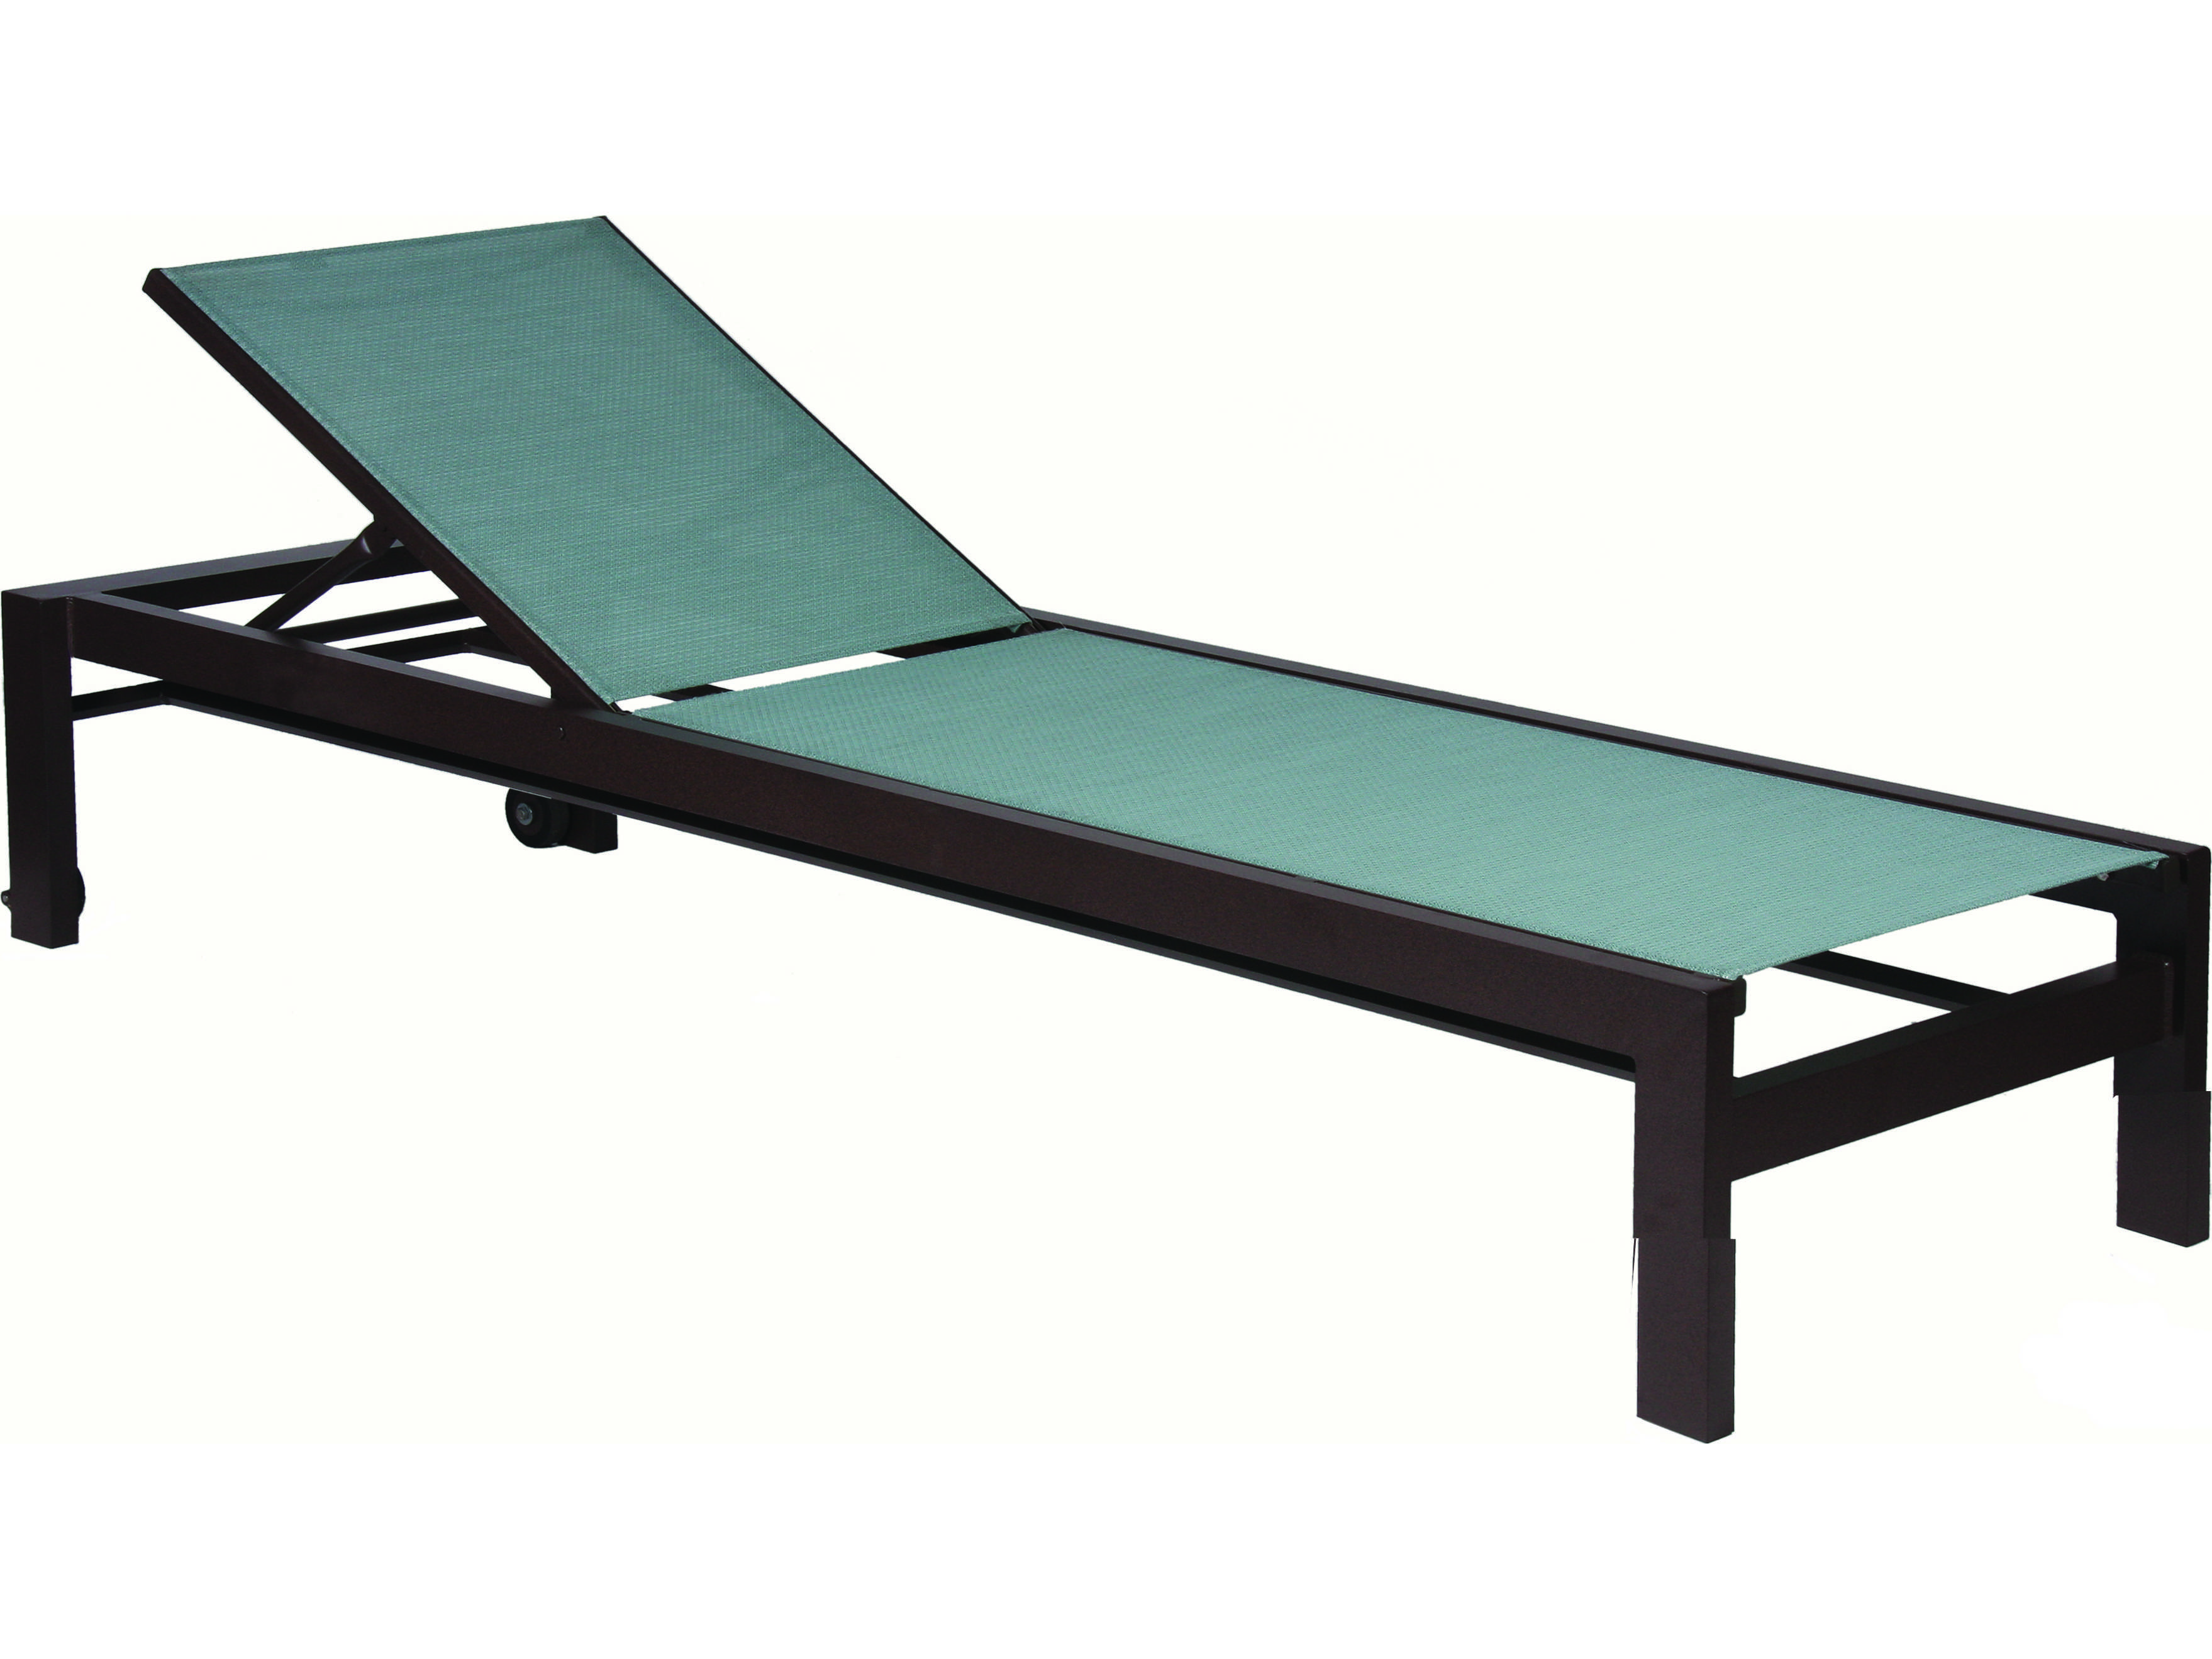 Suncoast vectra bold sling cast aluminum chaise lounge for Cast aluminum chaise lounge